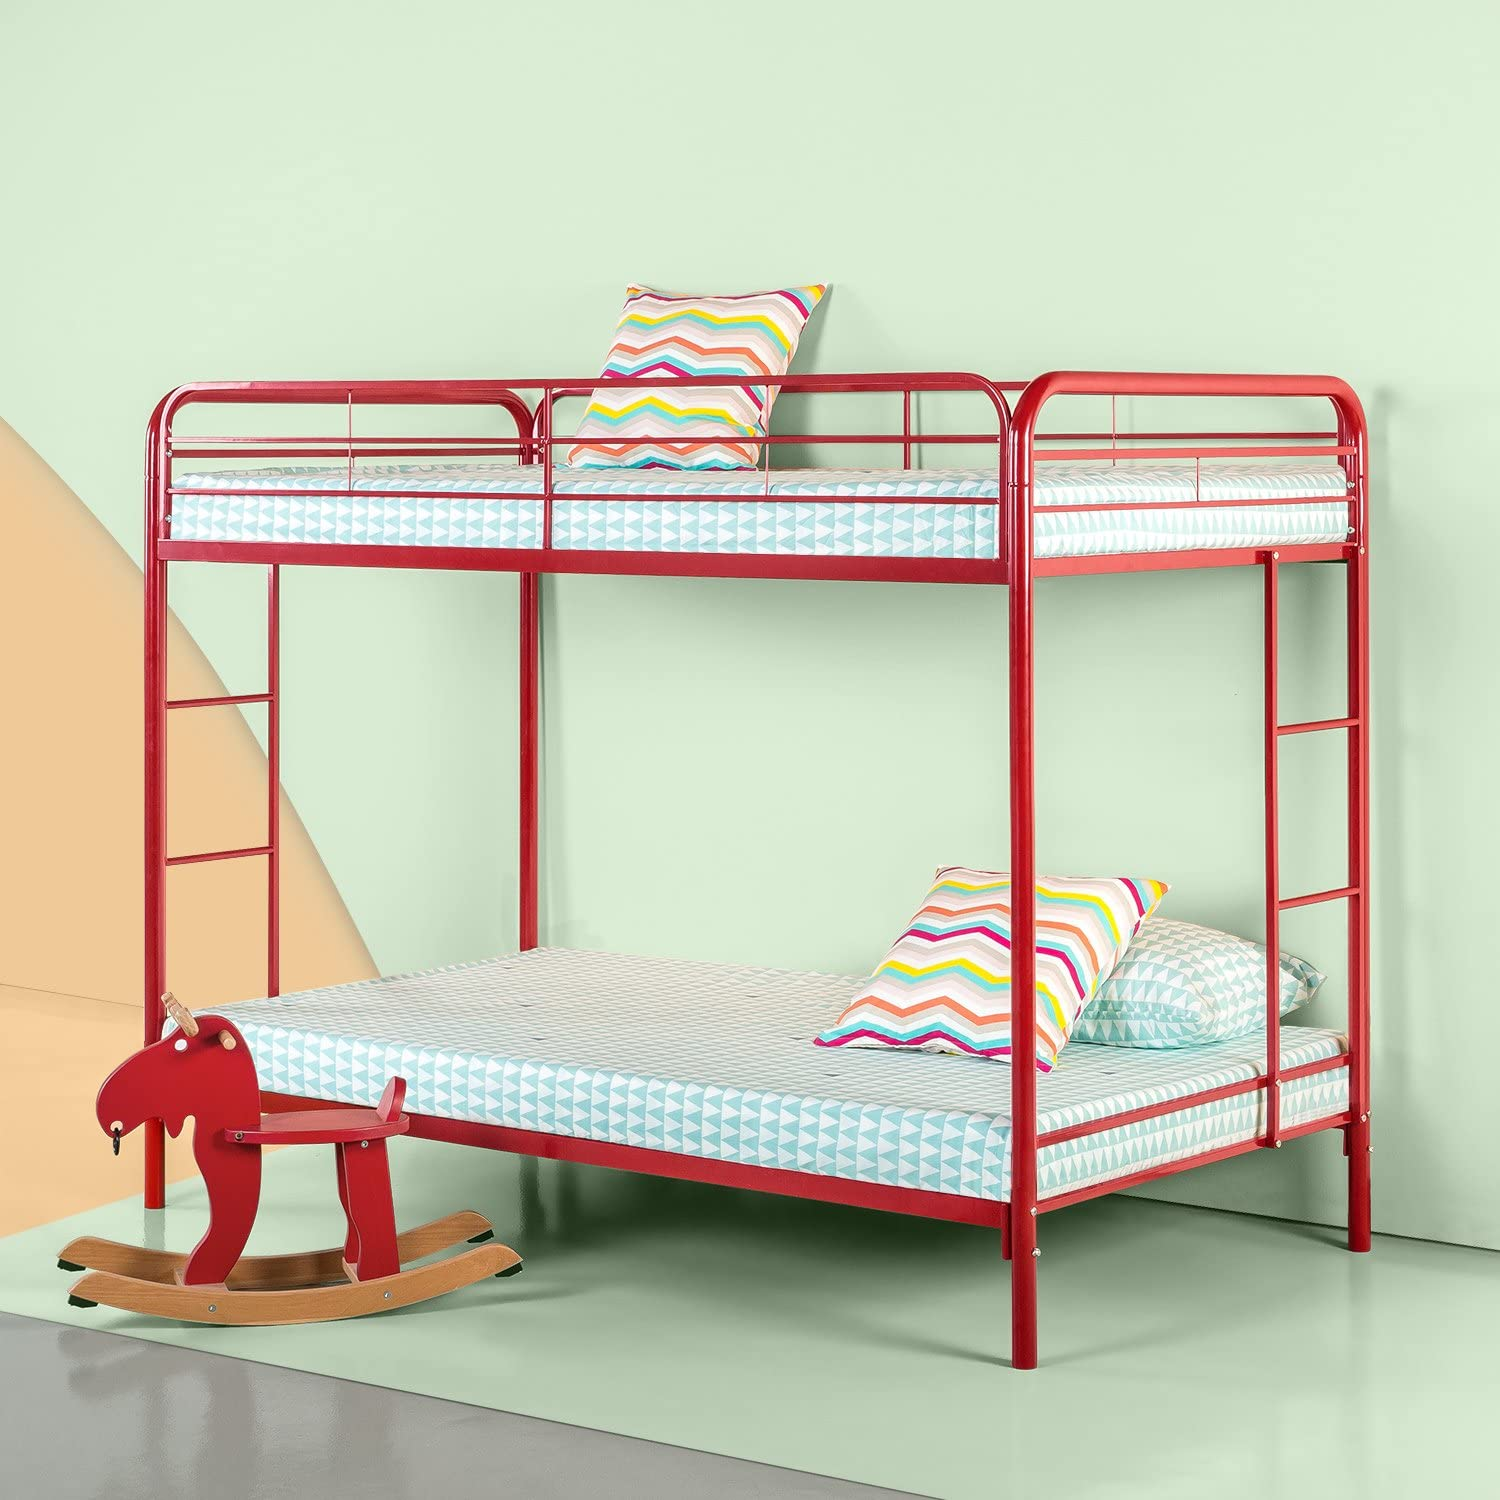 Zinus Easy Assembly Quick Lock Metal Bunk Bed with Dual Ladders, Twin Over Twin, Red